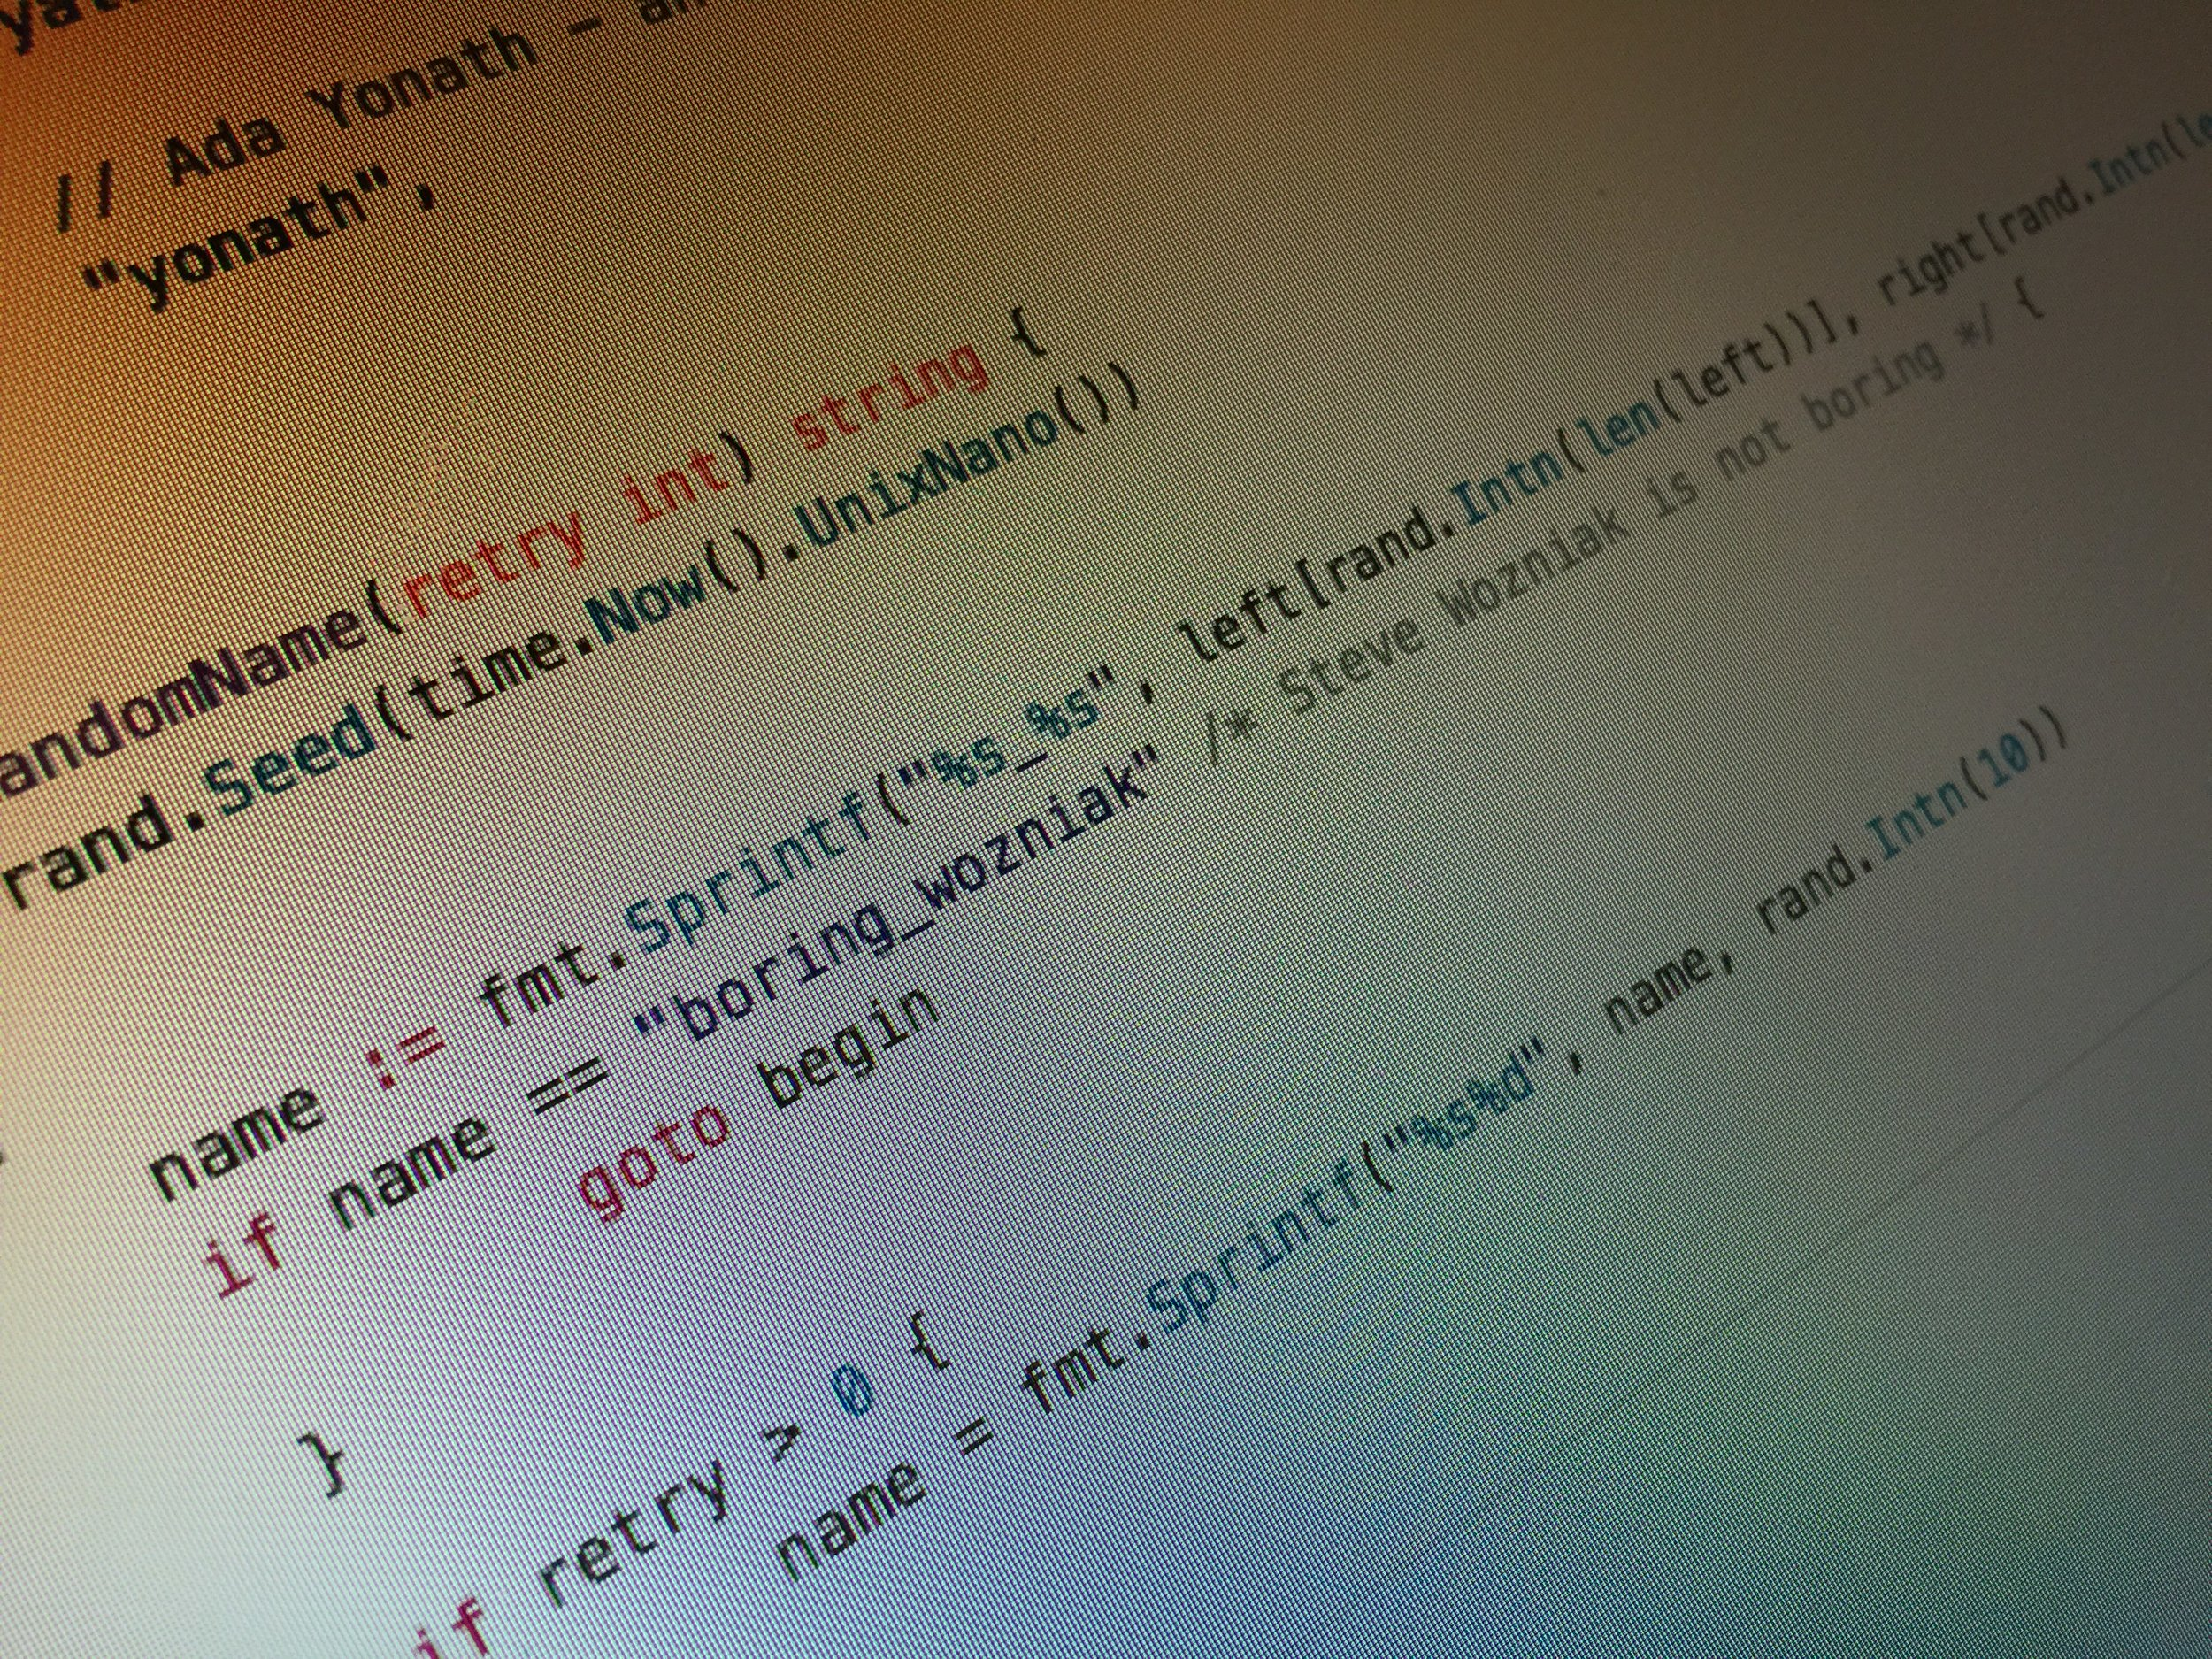 """An image of code featuring a comment """"Steve Wozniak is not boring""""."""